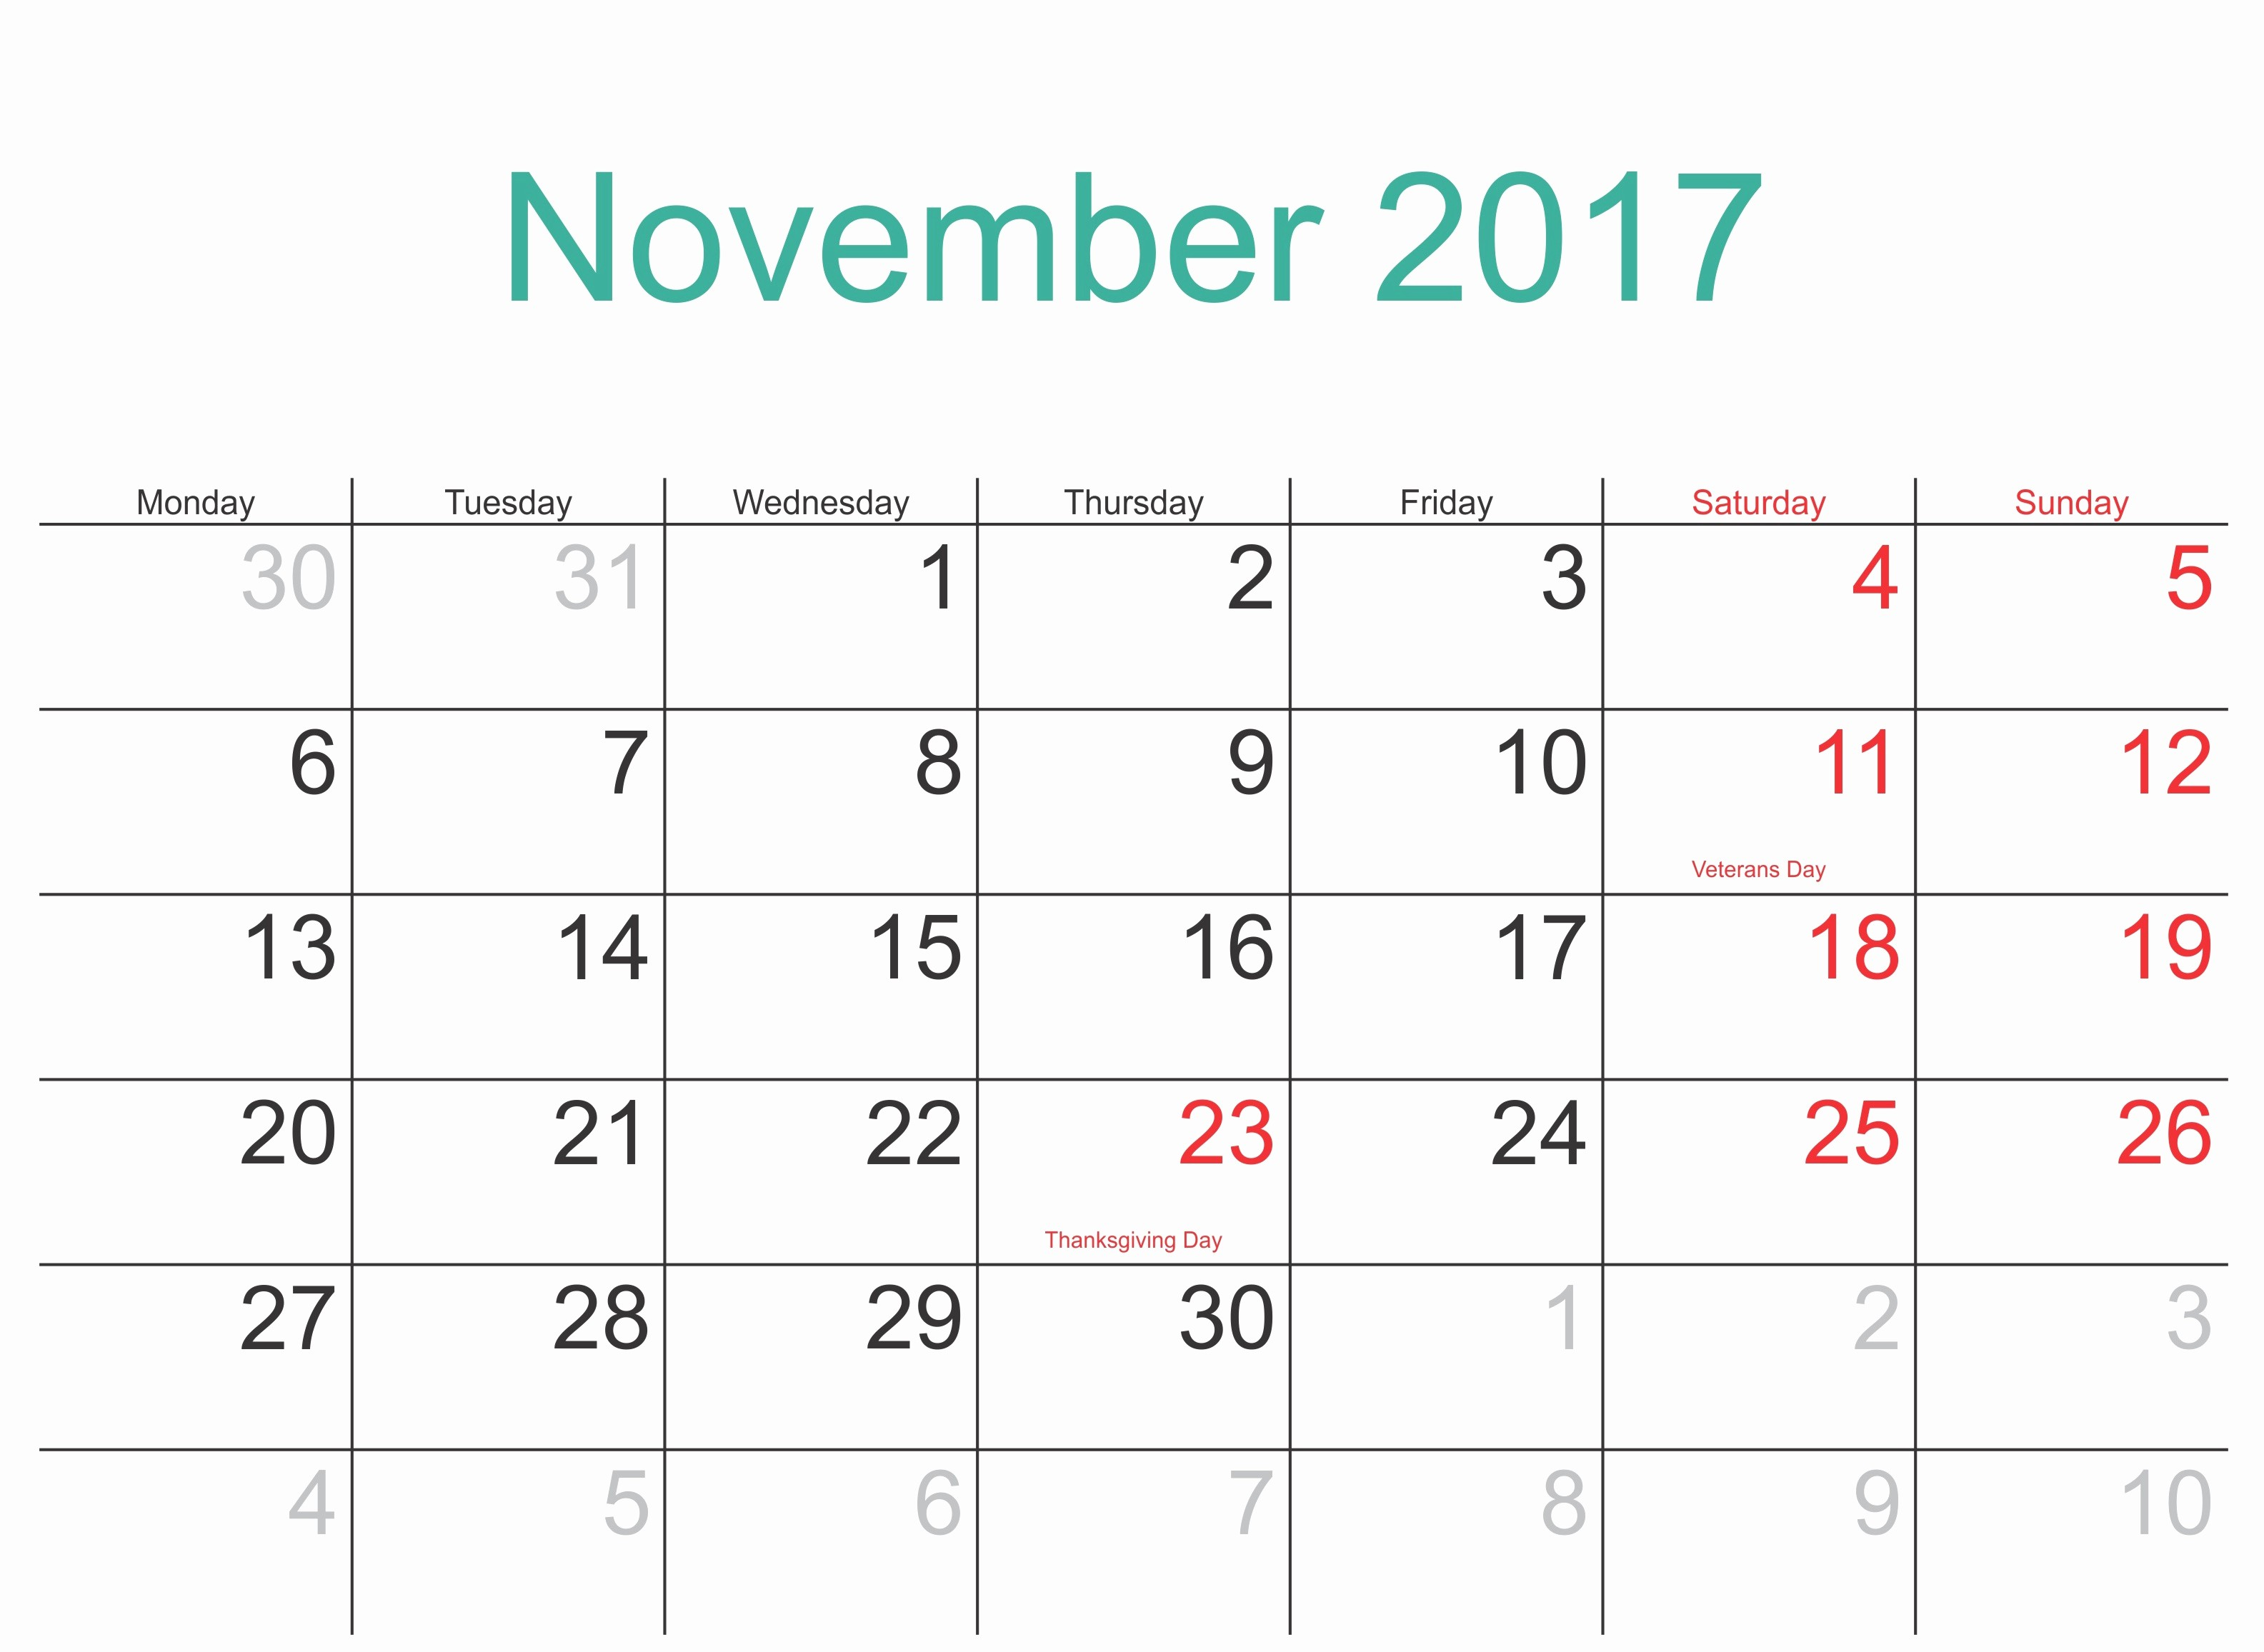 Calendar 2017 Template with Holidays Best Of November 2017 Printable Calendar Template Holidays Excel